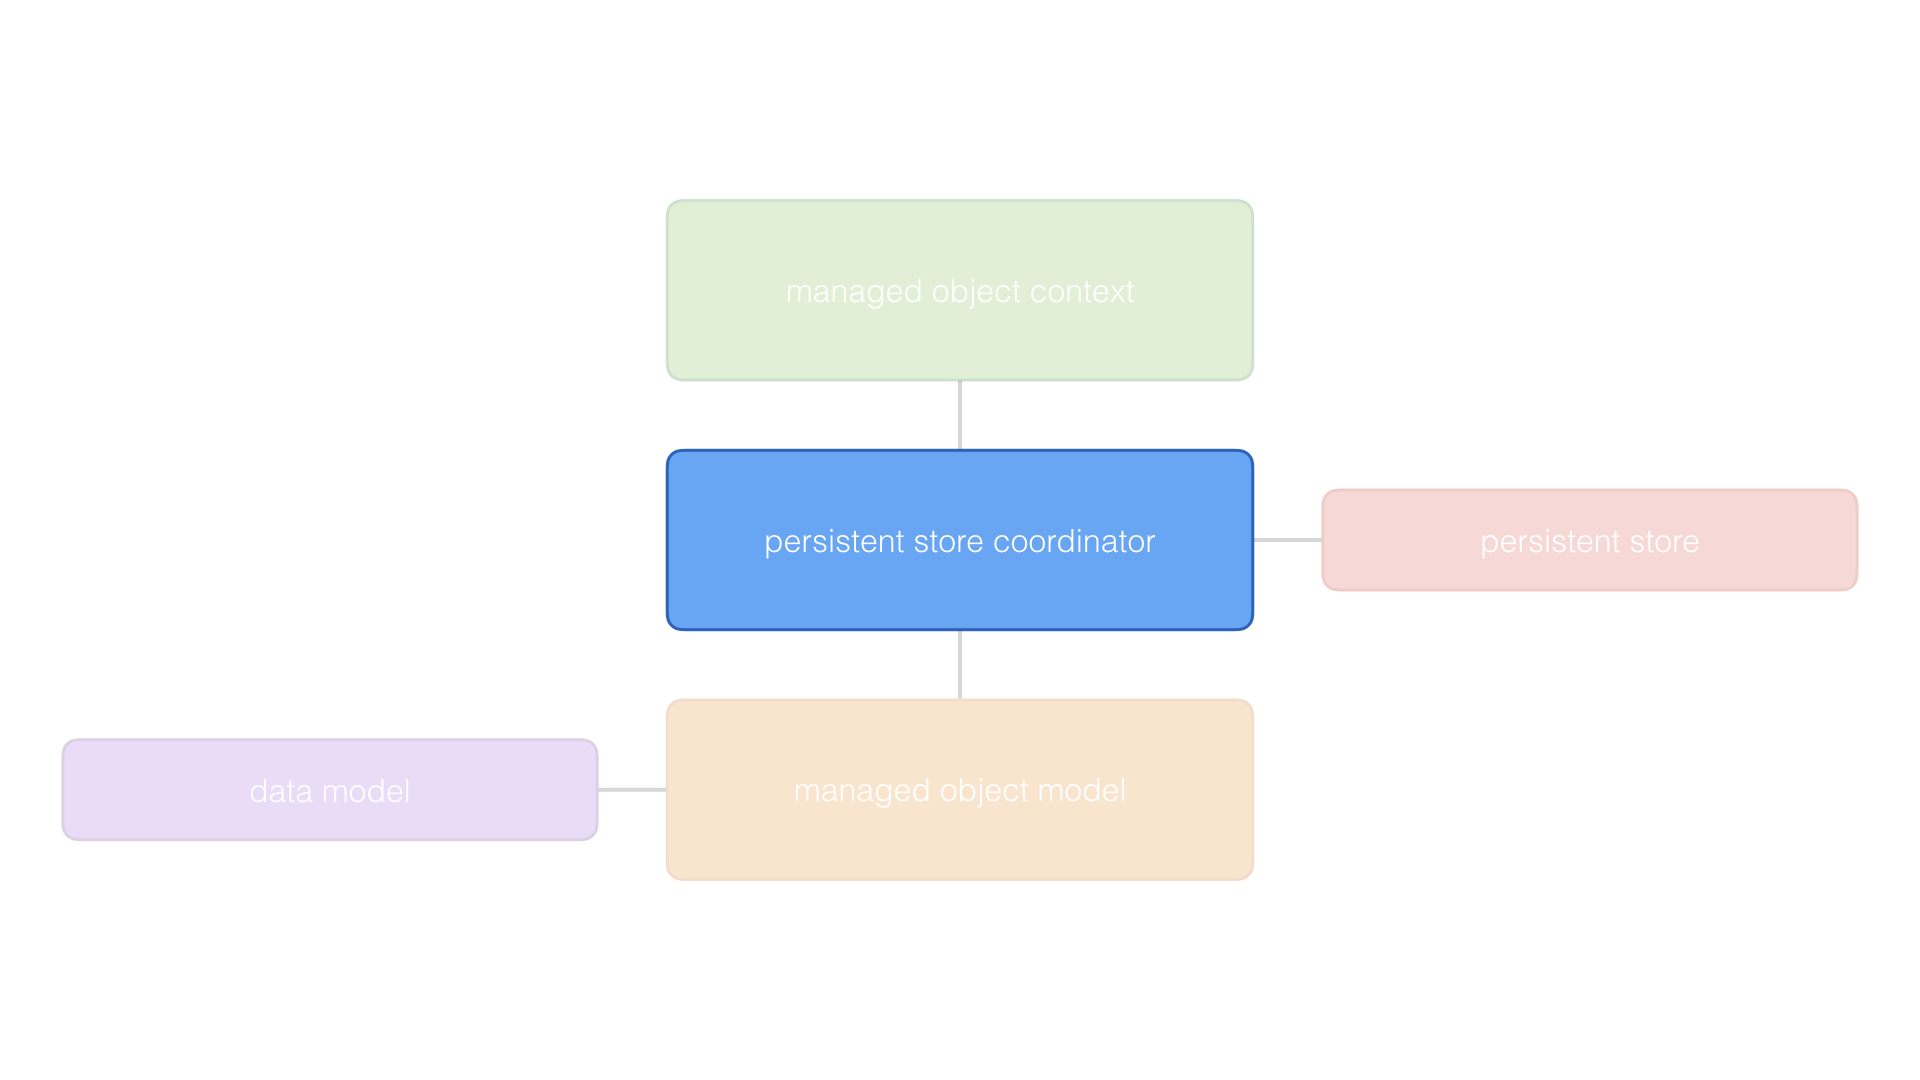 The persistent store coordinator is instantiated first.